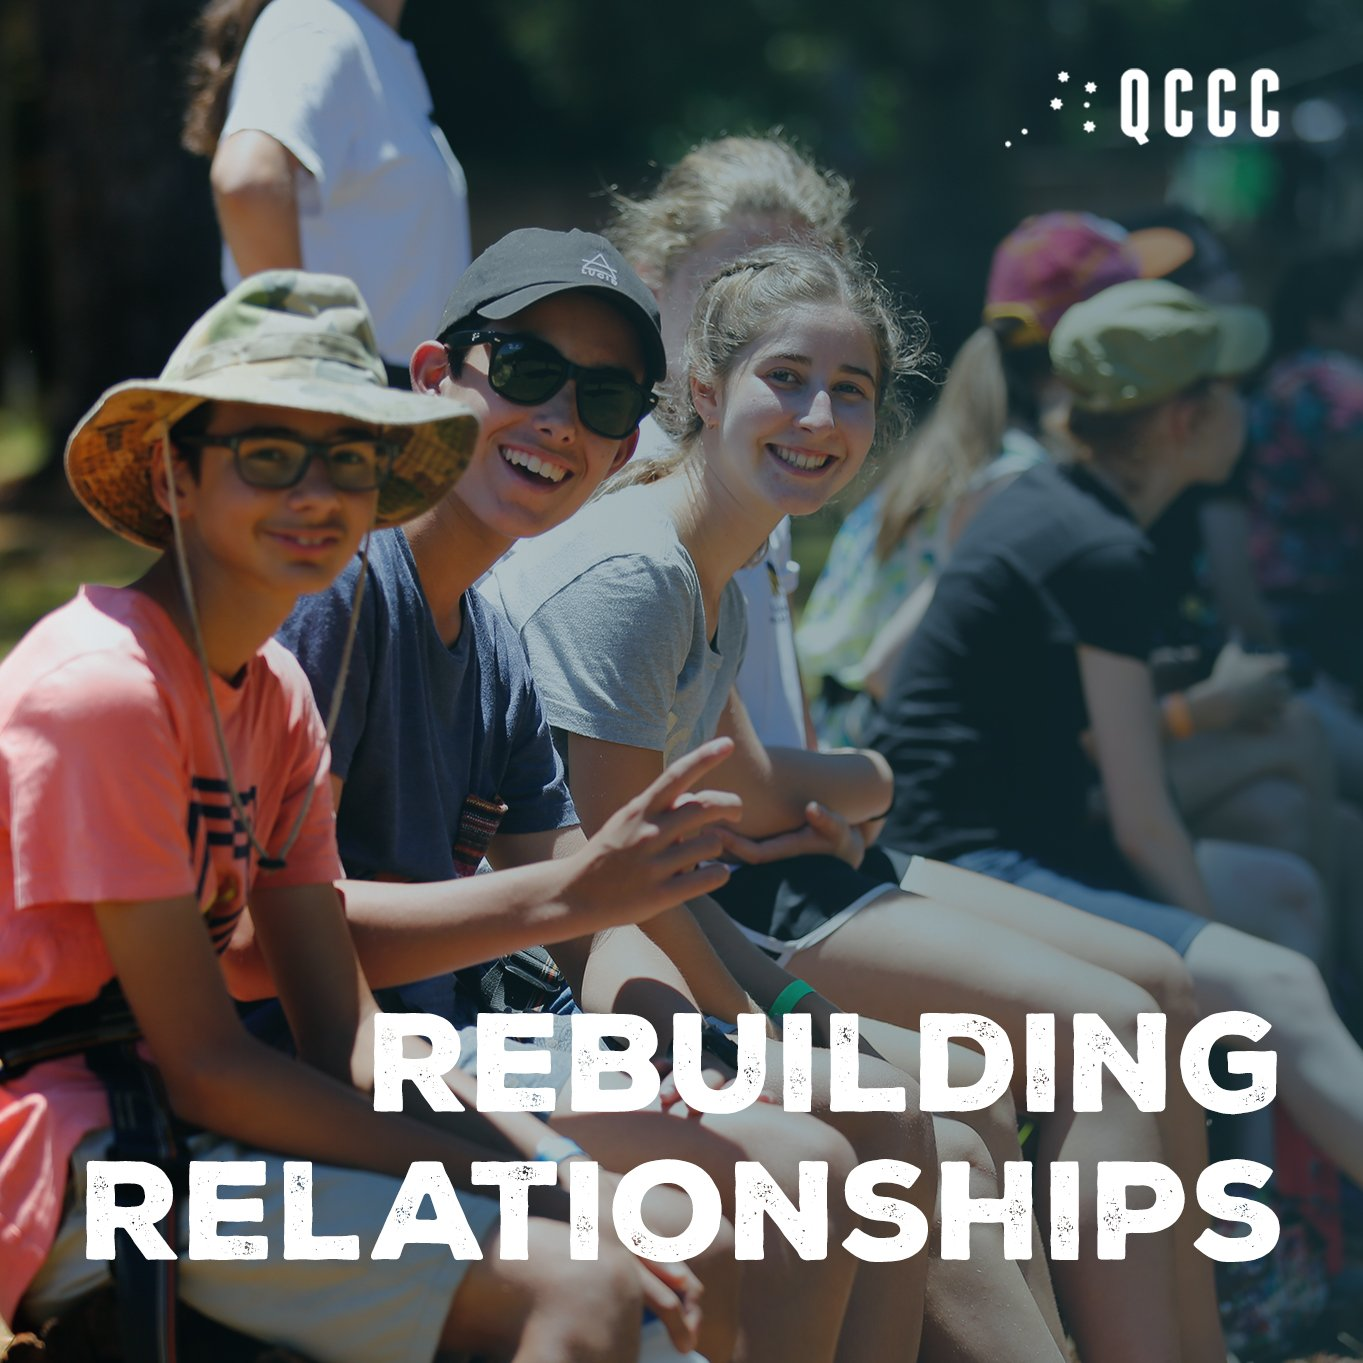 Camp Rebuilding Relationships